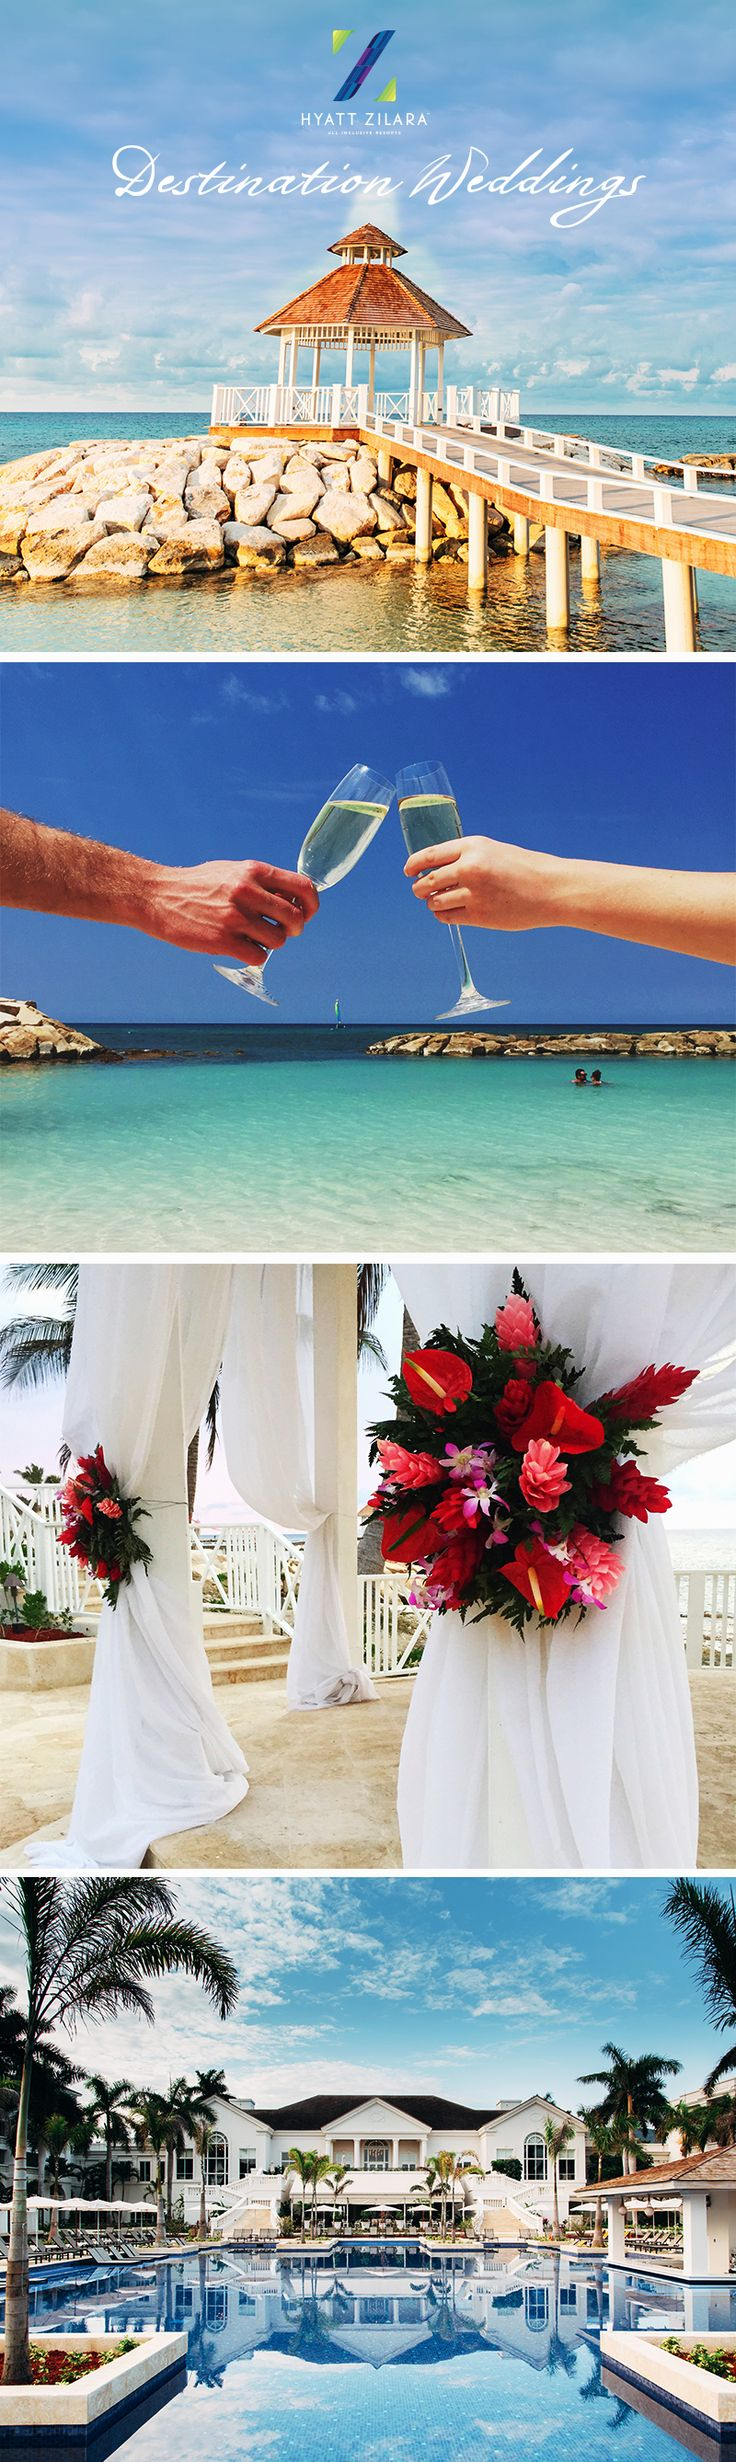 Planning a beach wedding? Our all inclusive resort in Montego Bay, Jamaica has the perfect atmosphere to make your walk down the aisle a memorable one! From the beach front gazebo to the intimate sky lounge, your dream destination wedding becomes a reality with #HyattAllIn. | Hyatt Zilara Rose Hall